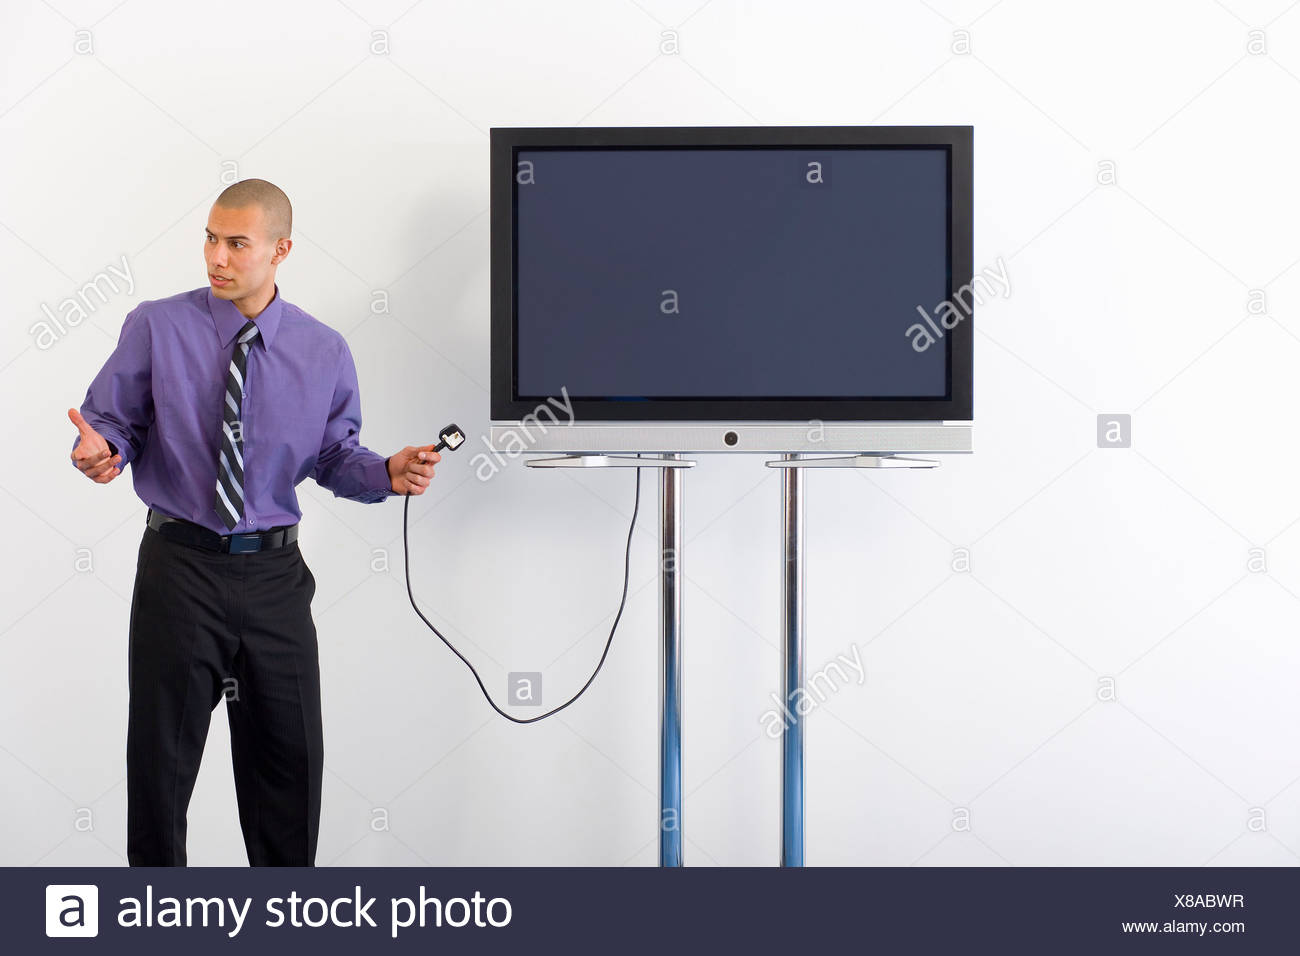 Businessman holding plug to widescreen television in boardroom, shrugging shoulders, looking away - Stock Image